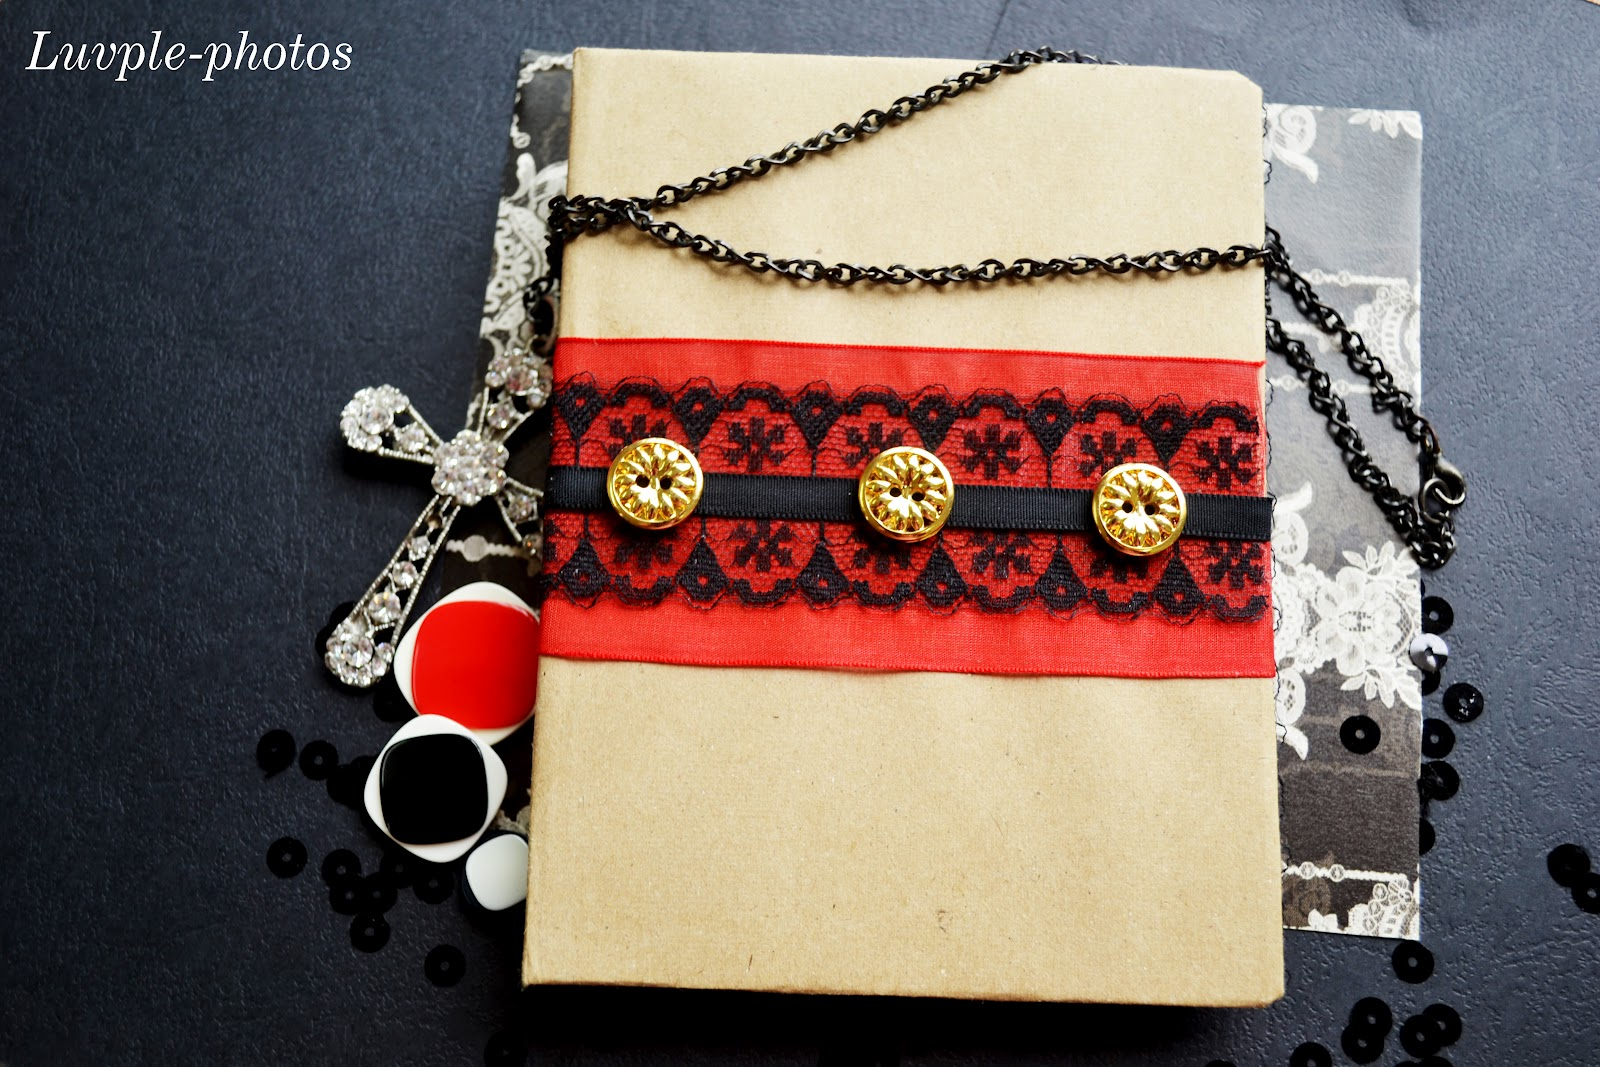 Book Cover Handmade ~ Luvple photos handmade book design shooting